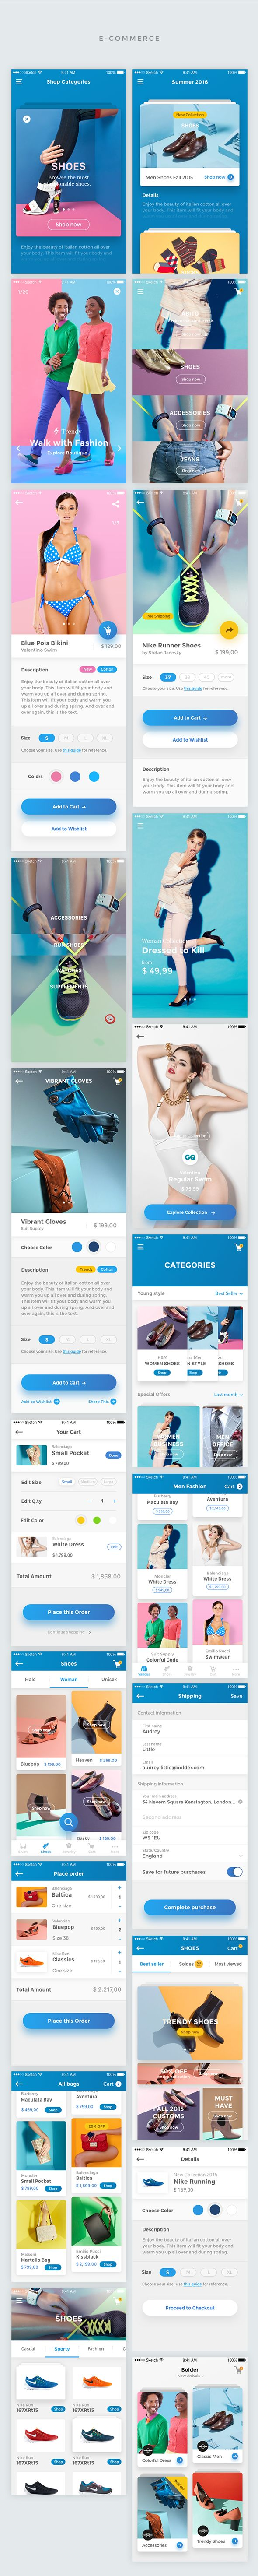 Bolder - Multipurpose Mobile UI KIT for Sketch - Sketch Templates